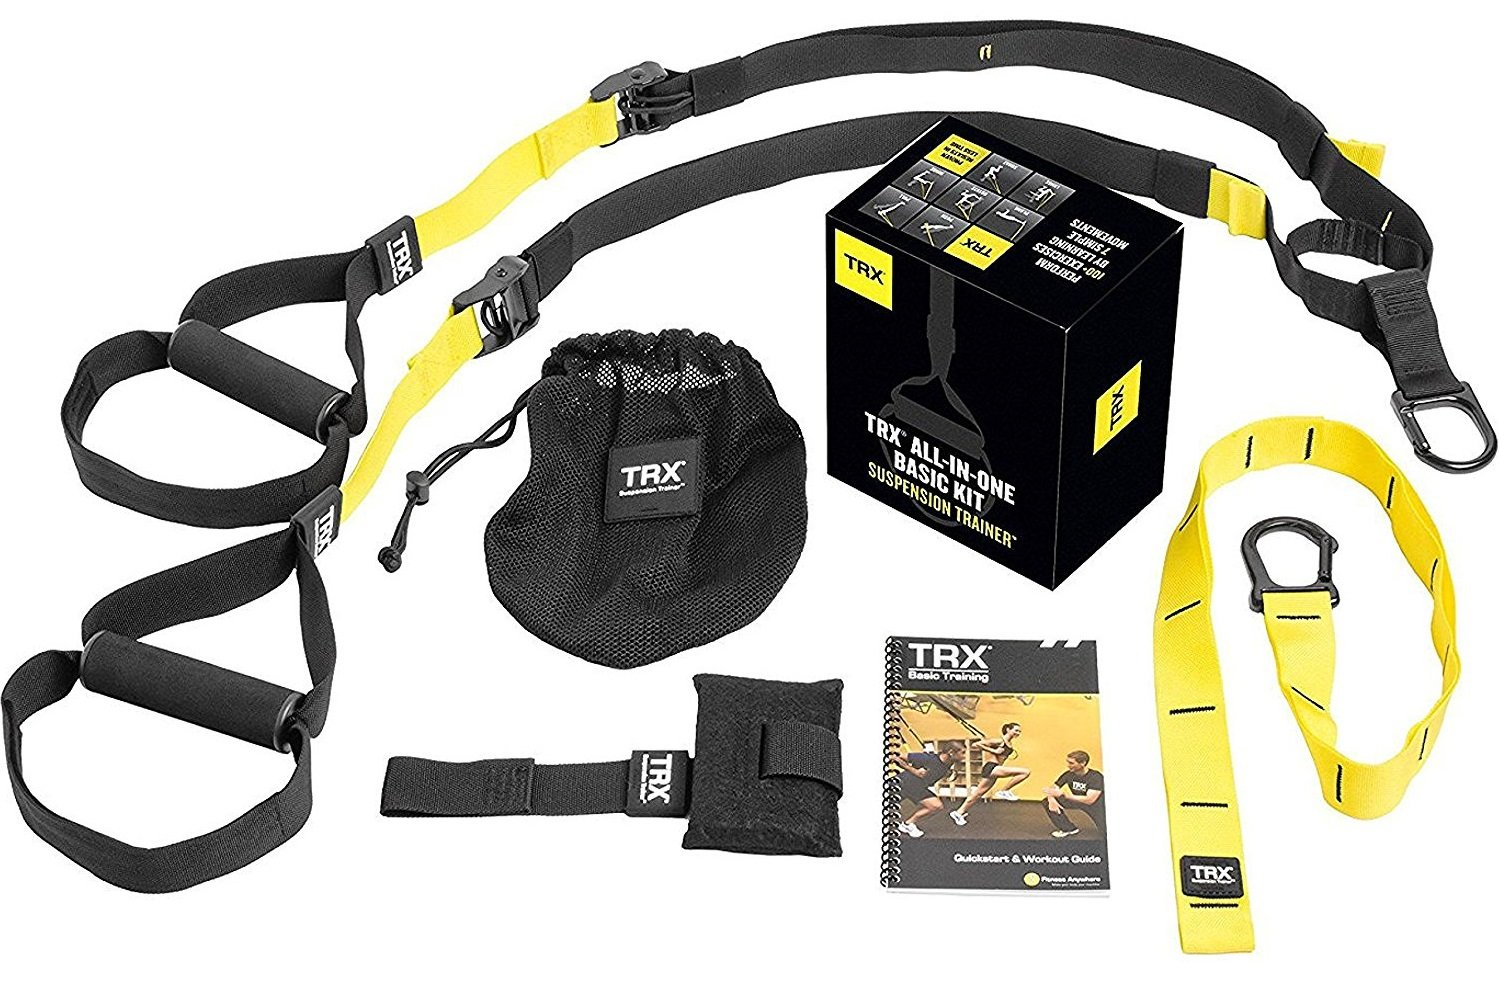 trx suspension training equipment kit